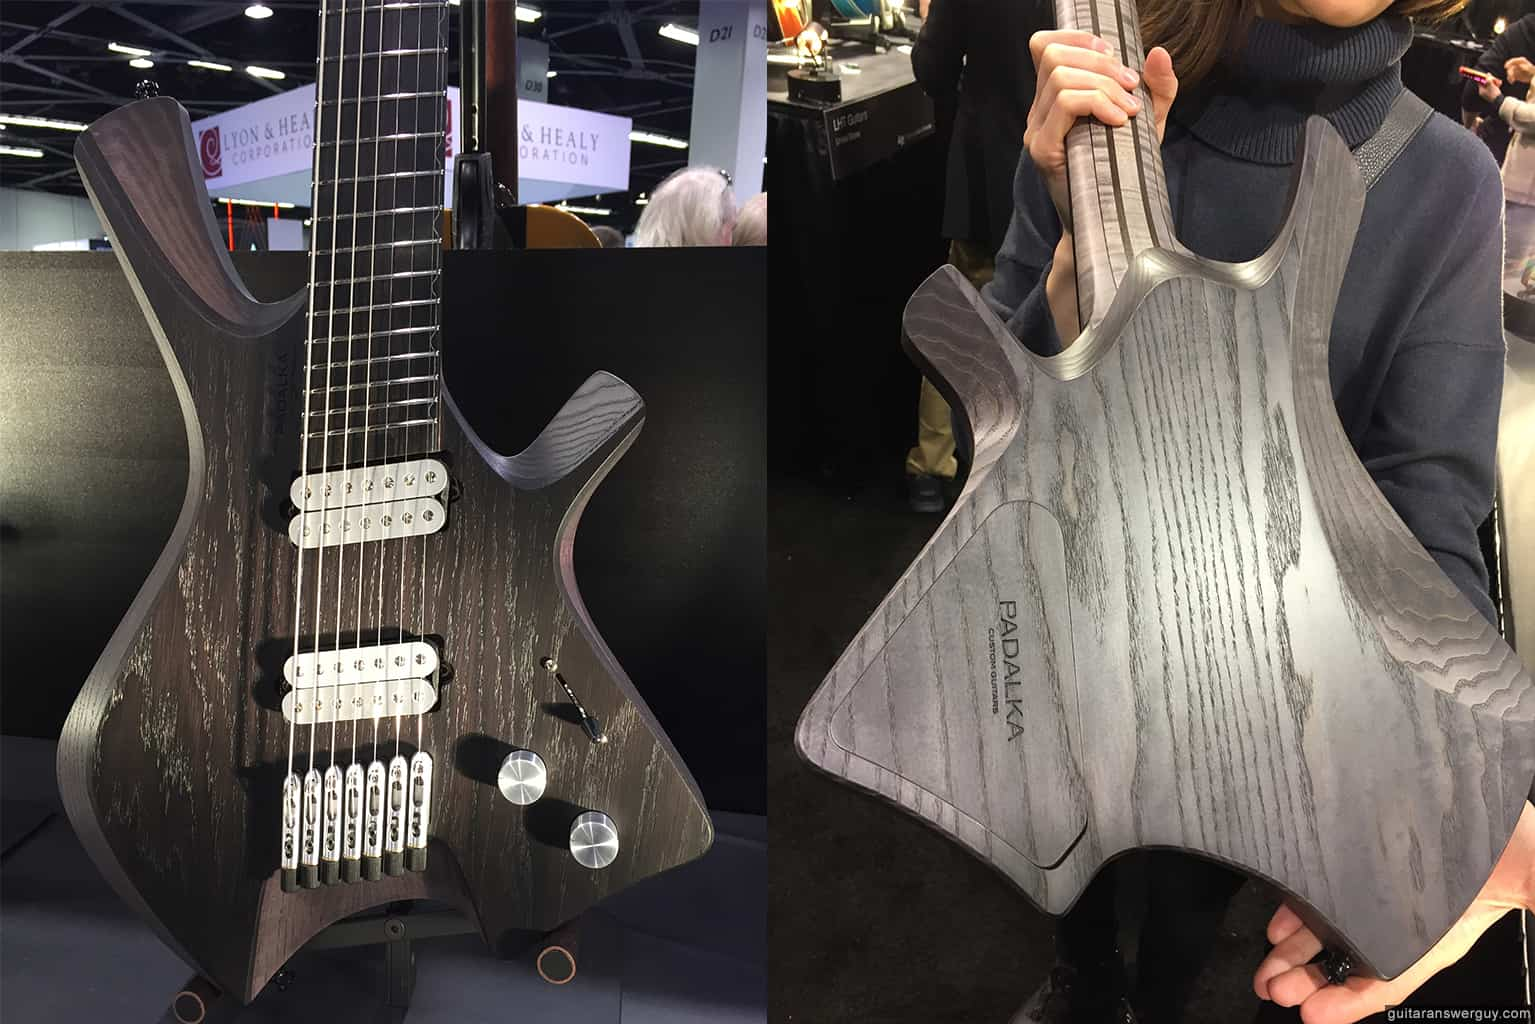 A Padalka guitar display in the Boutique Guitar Showcase at NAMM 2020